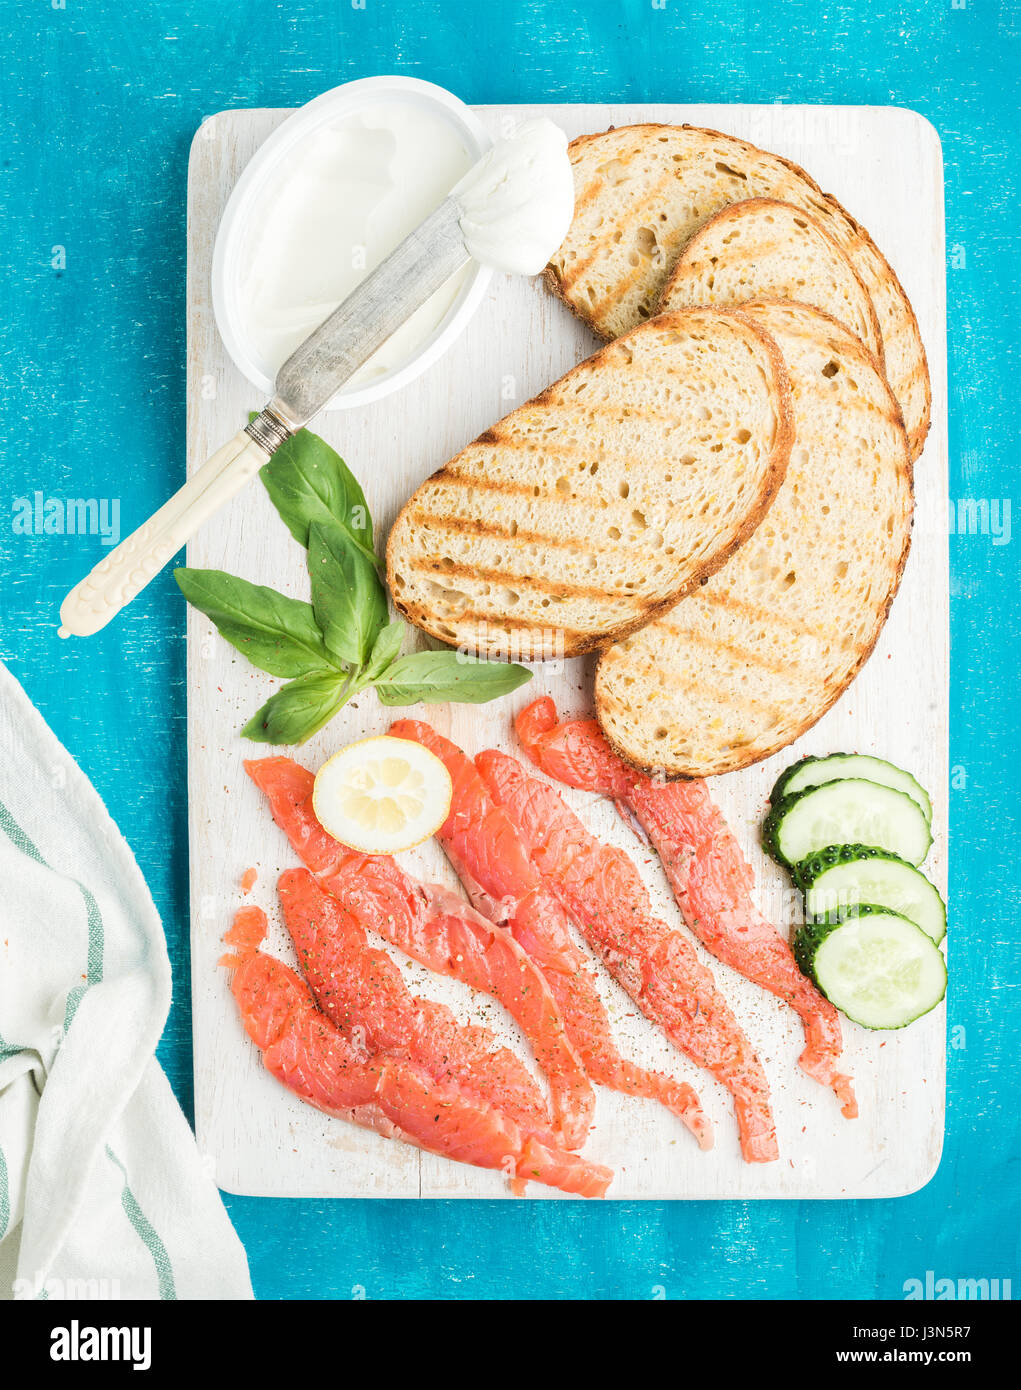 Ingredients for healthy sandwich. Grilled bread slices, smoked salmon, cottage cheese, cucumber and basil on white - Stock Image